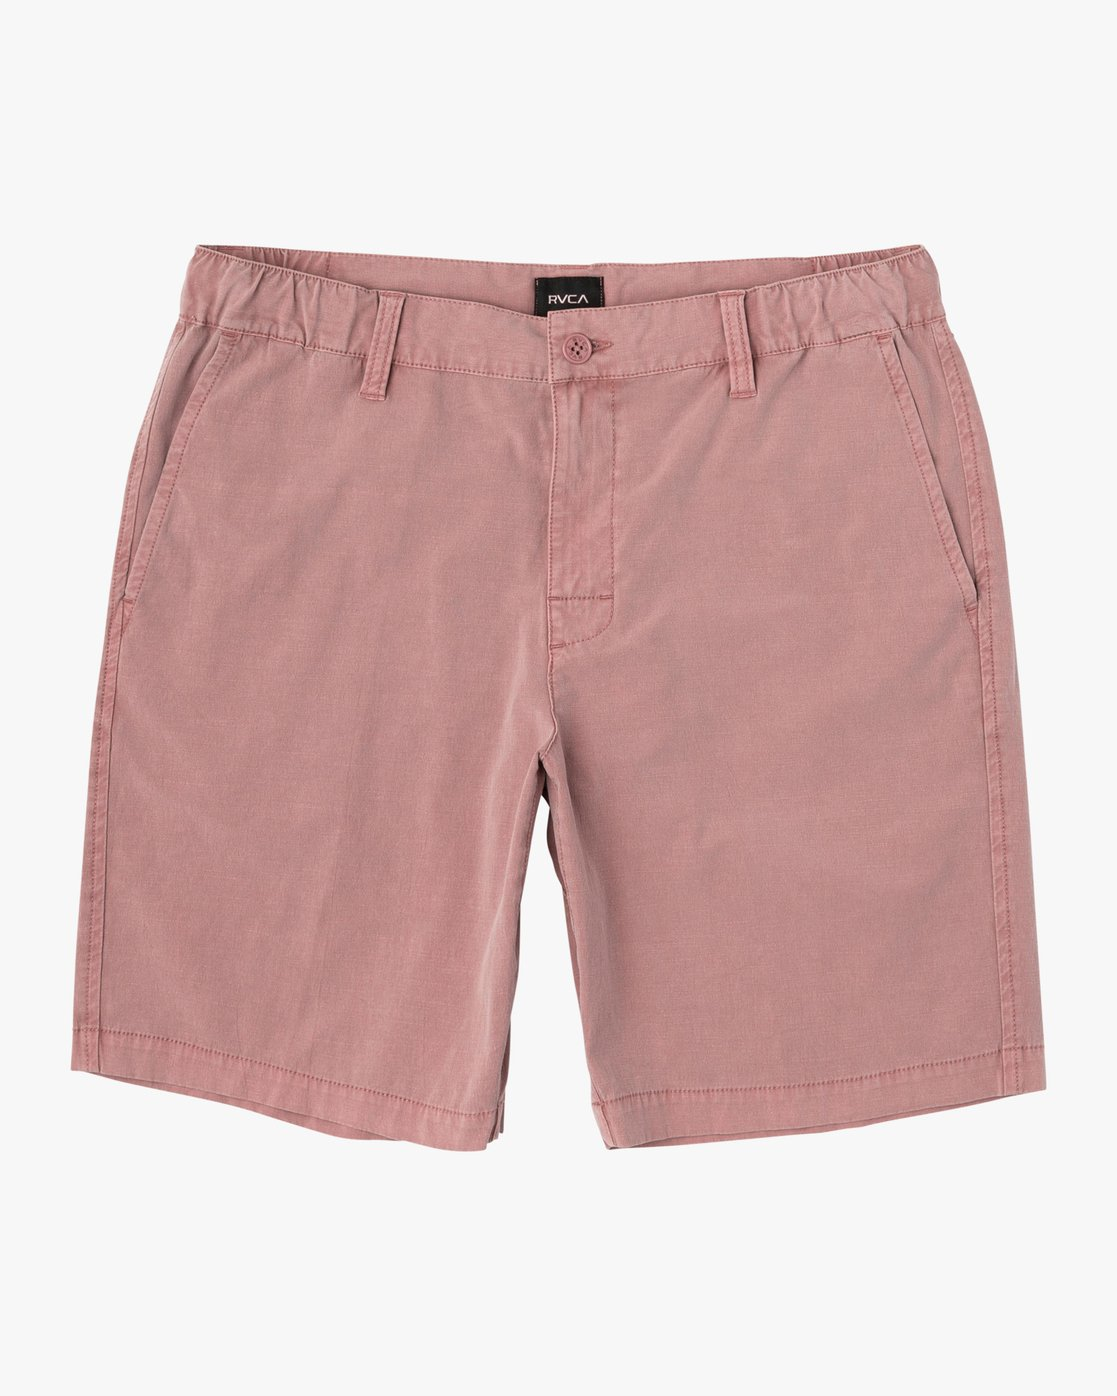 0 All Time Rinsed Coastal Hybrid Short Grey M211TRCR RVCA